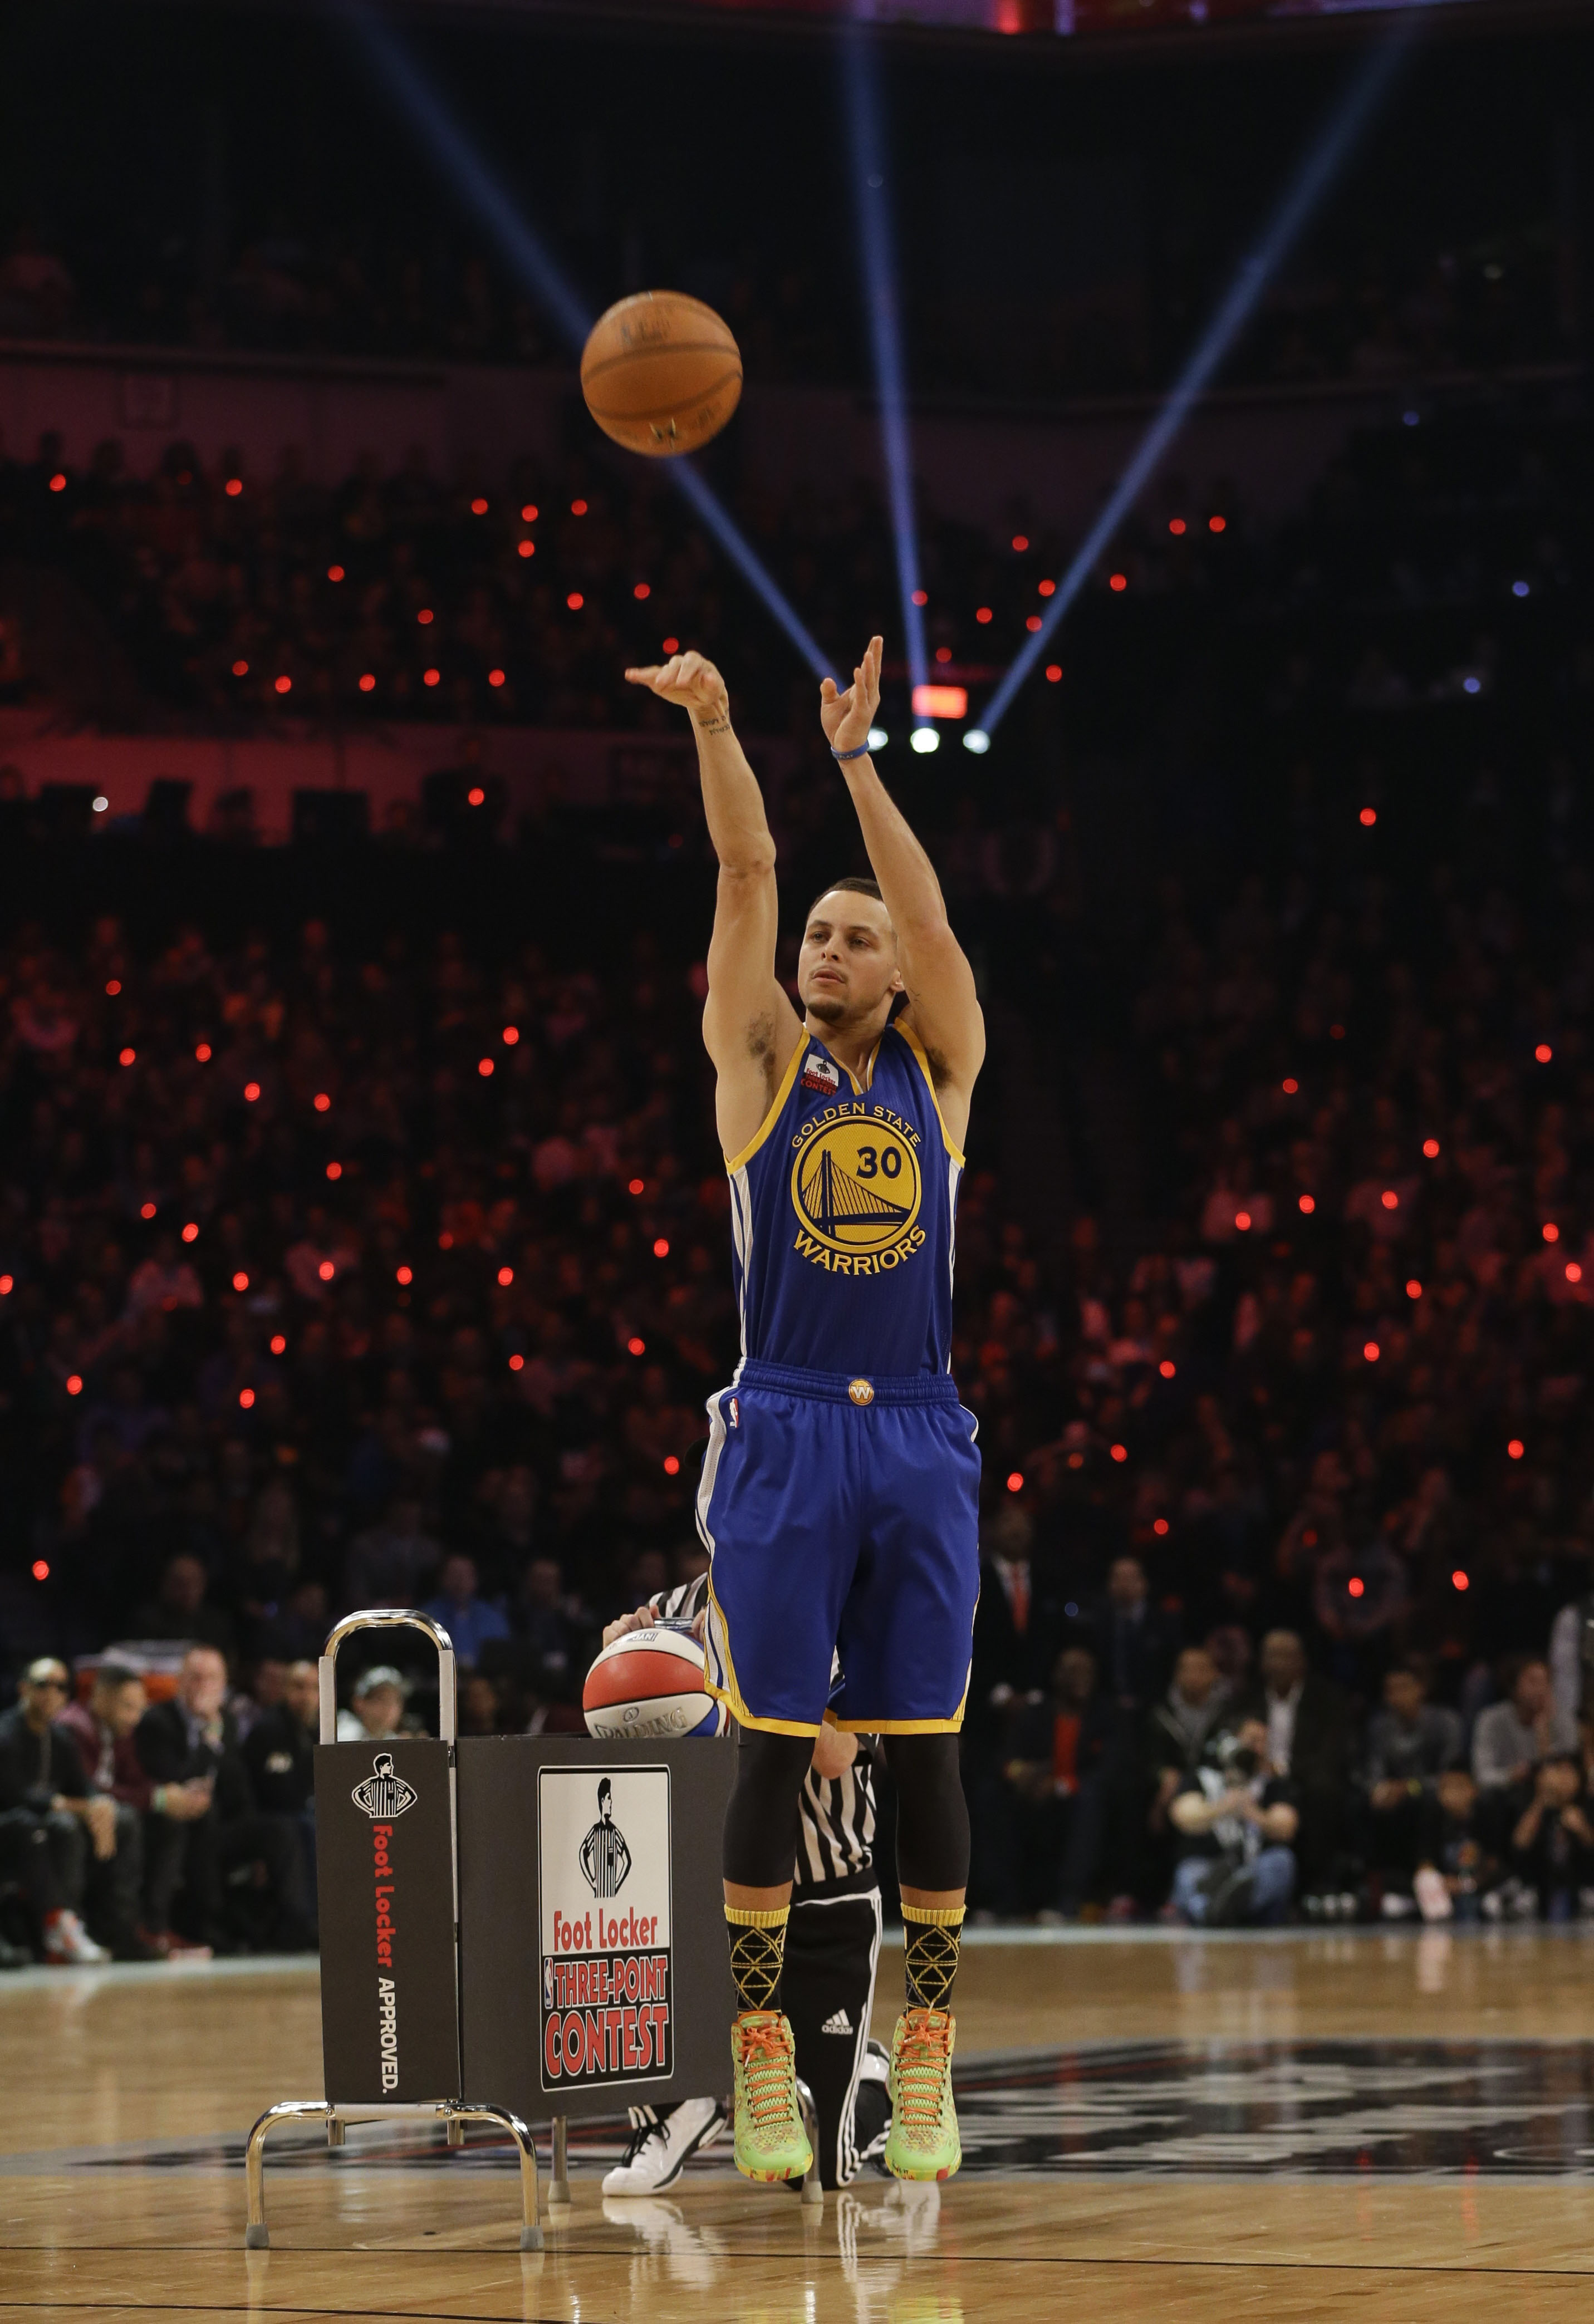 Curry shoots lights out in 3-pt event | The Japan Times